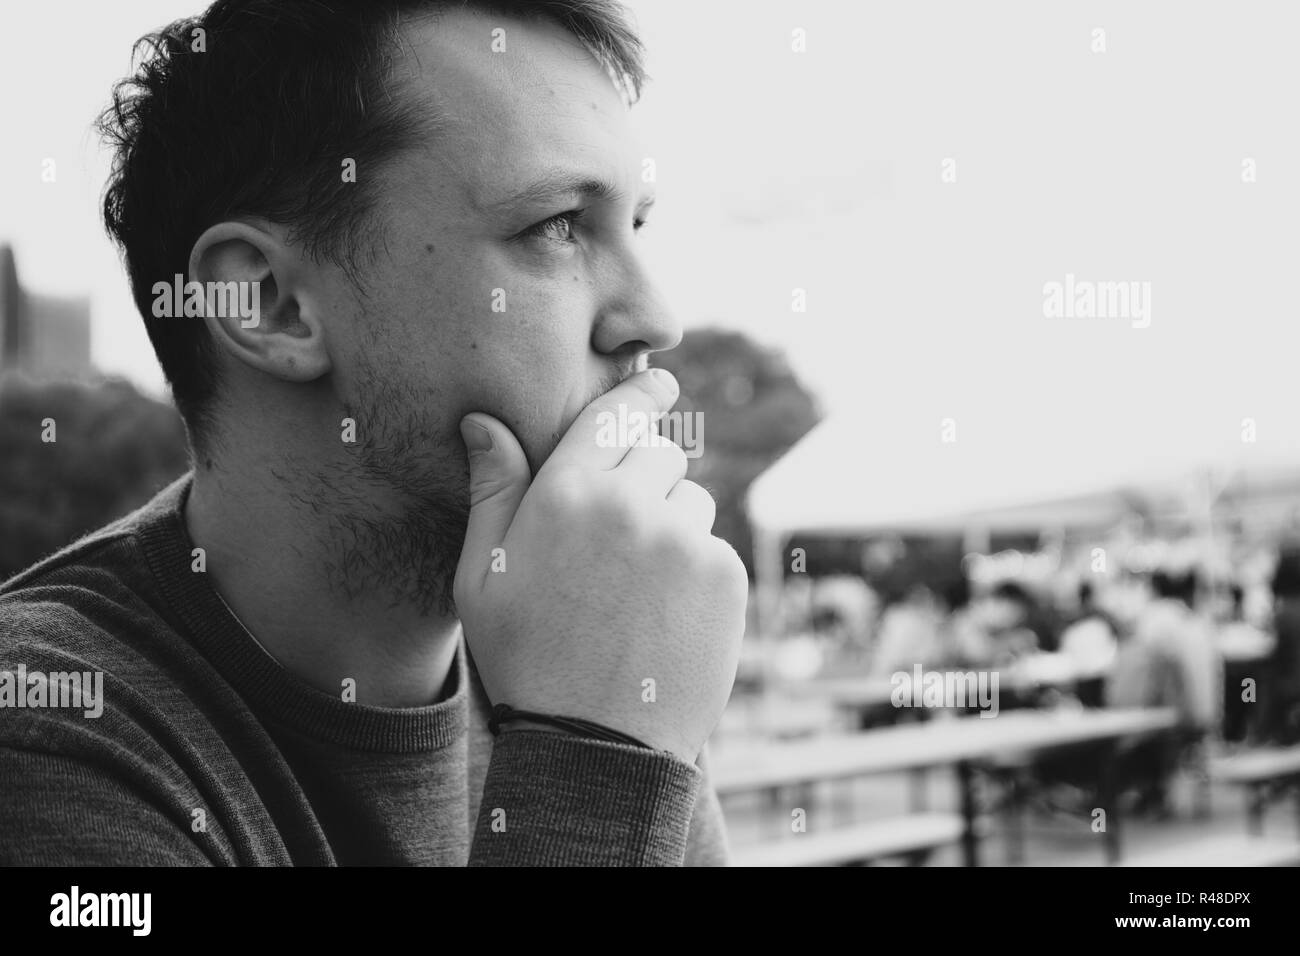 A handsome man looking off to the side in black and white - Stock Image